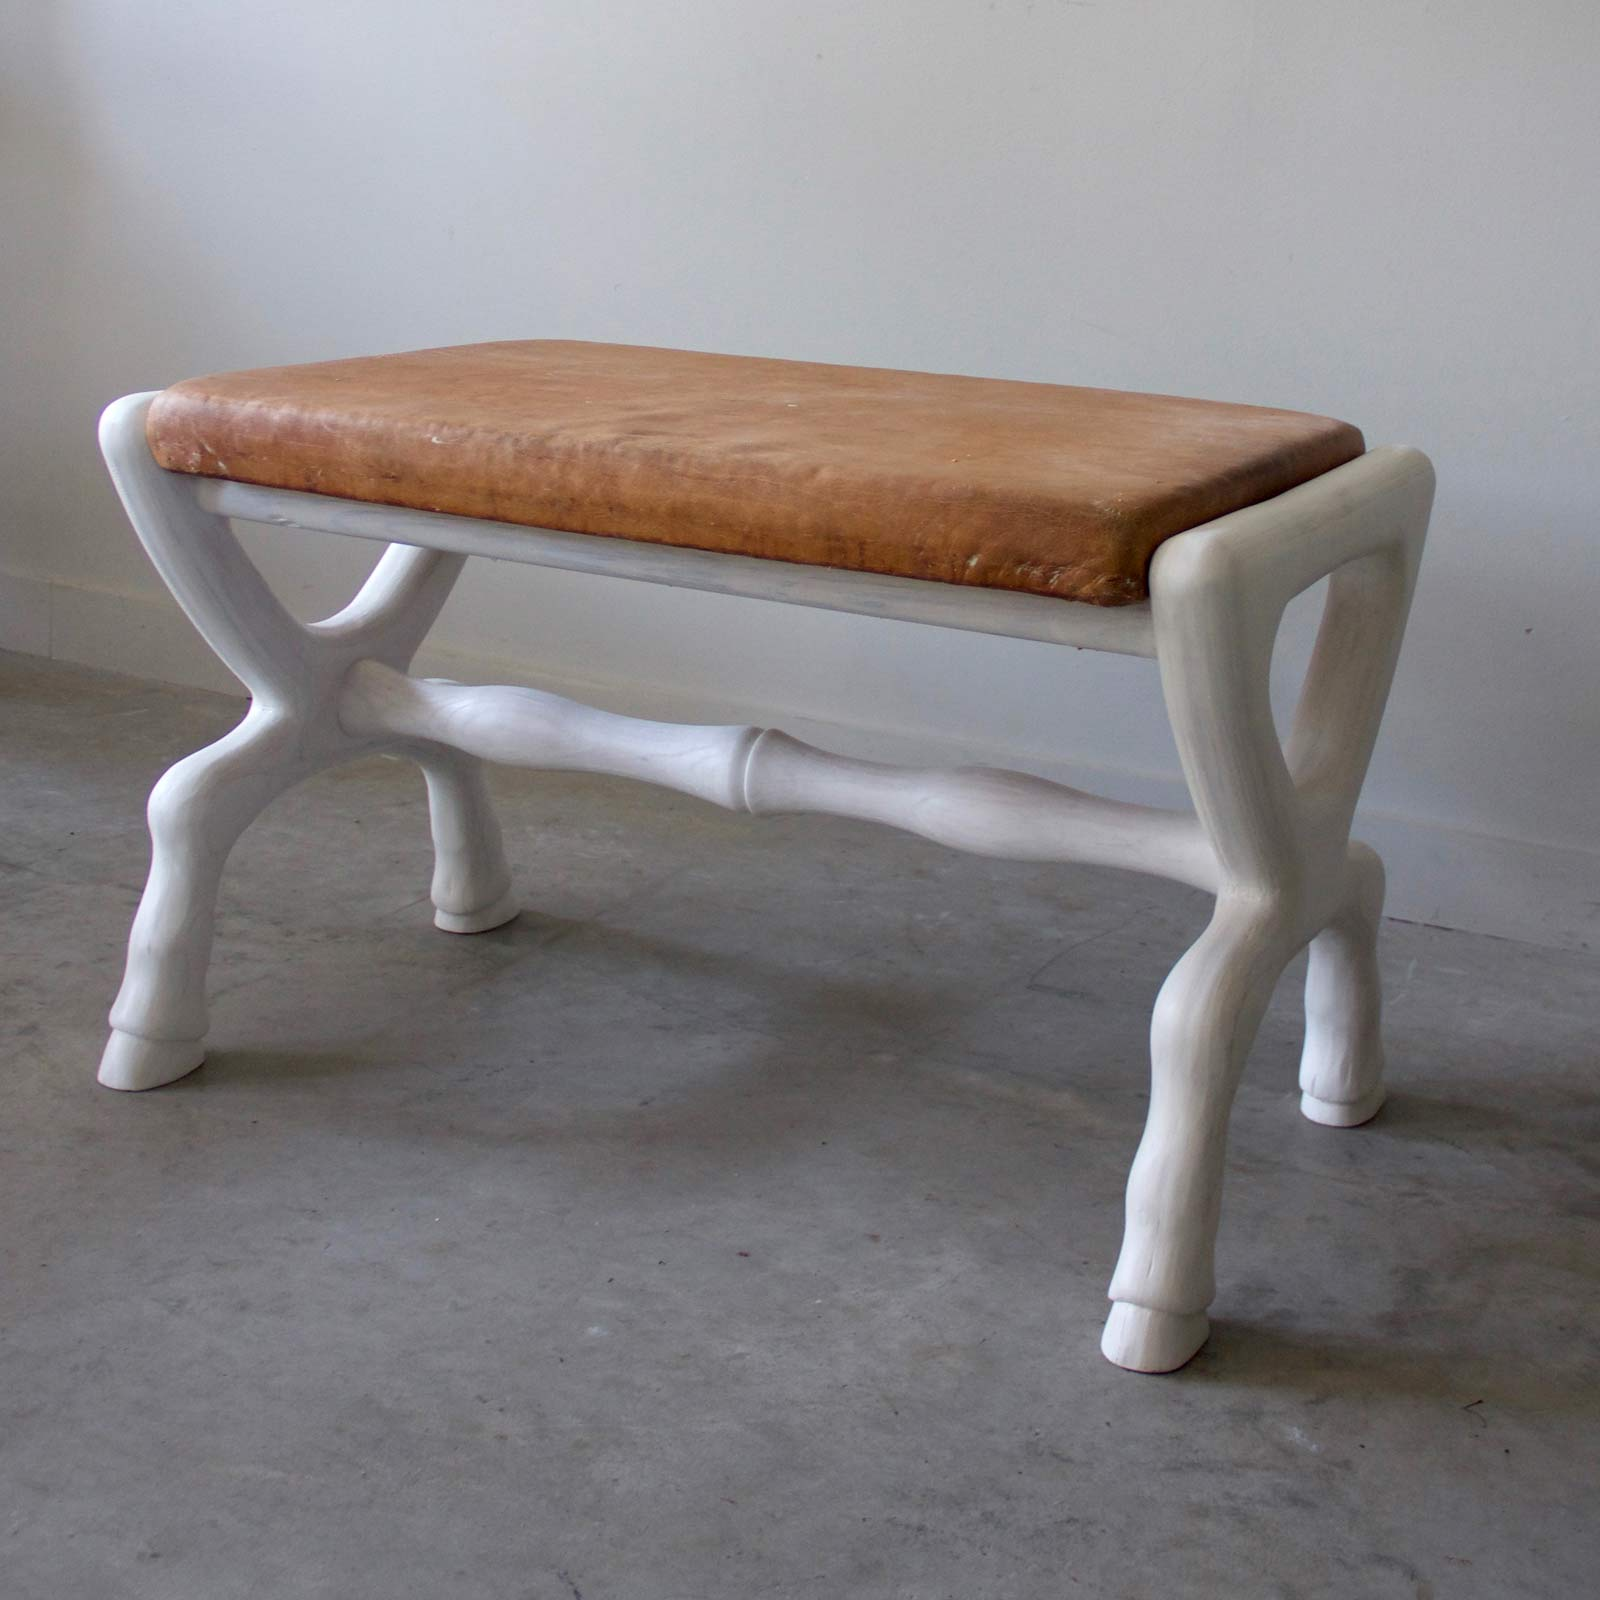 White Washed Equestrian Bench with Belgian Leather Top, $2300